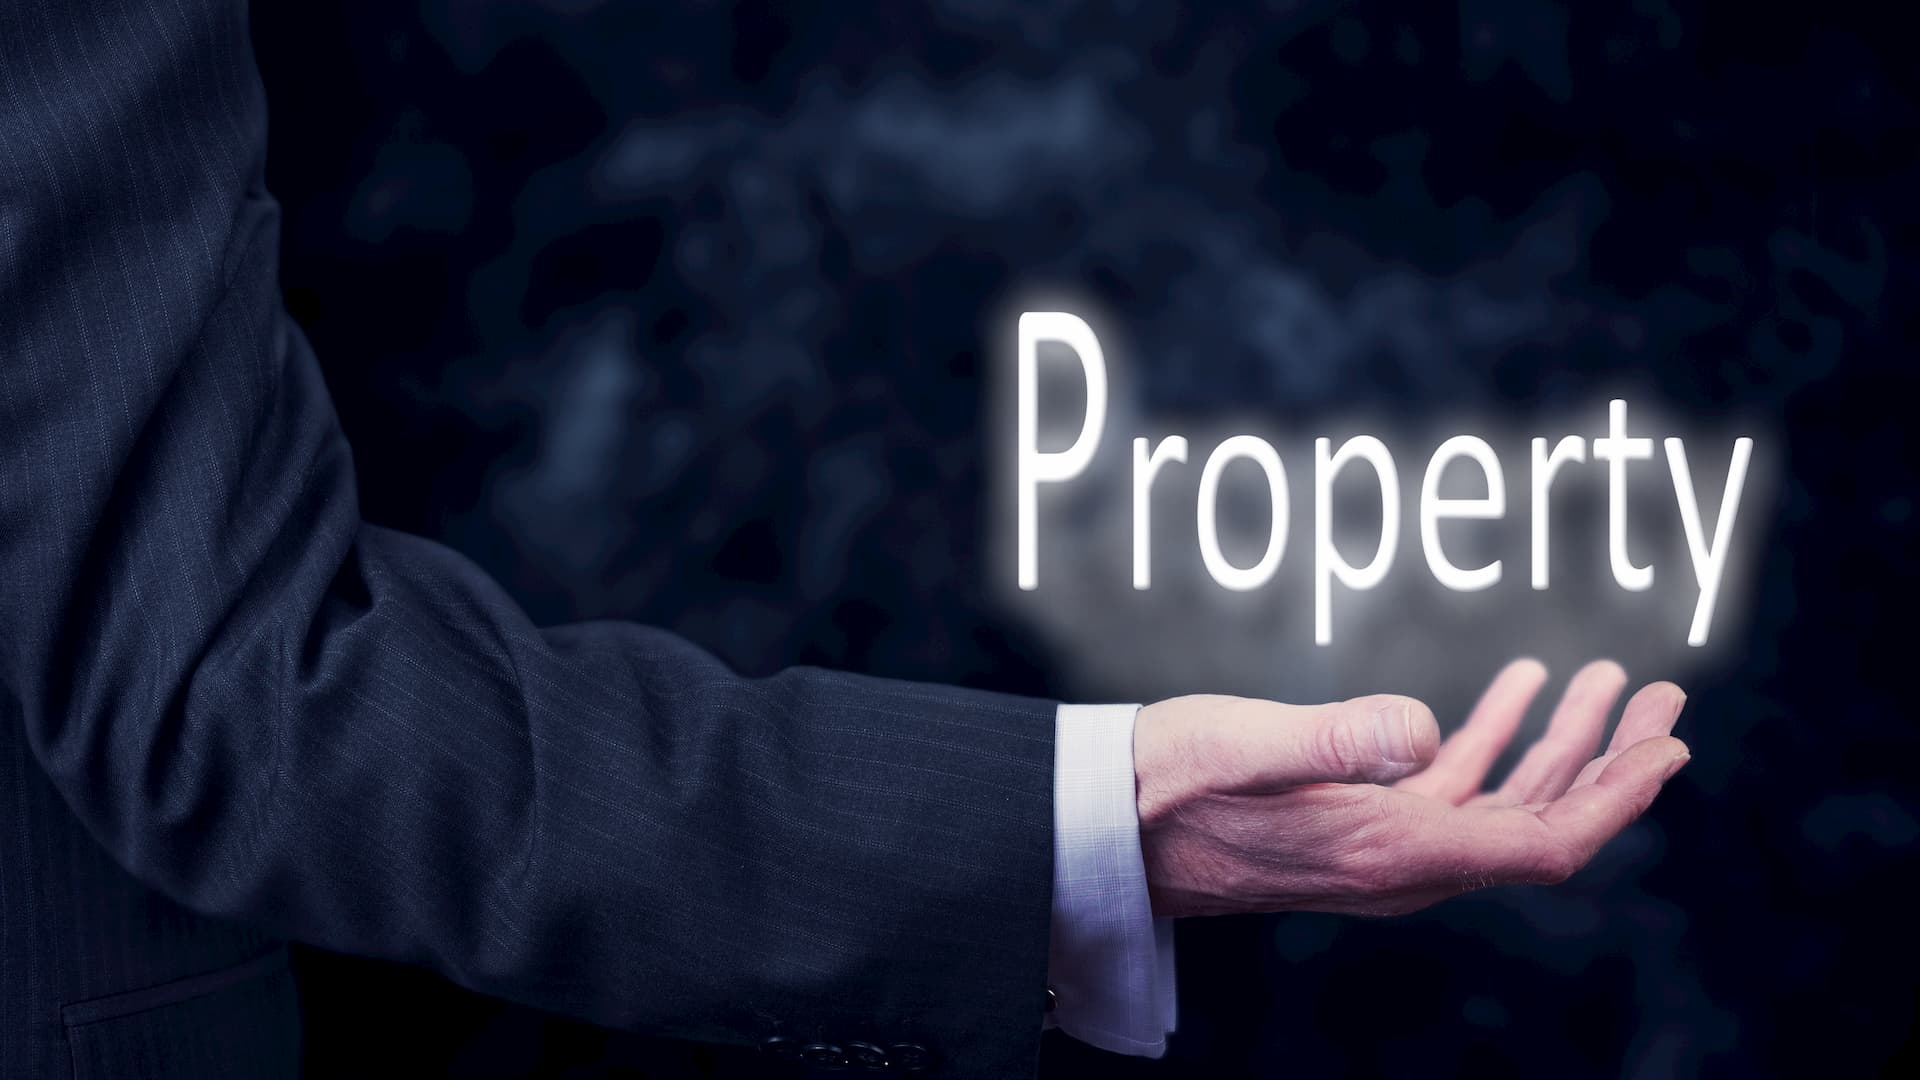 Property Arm